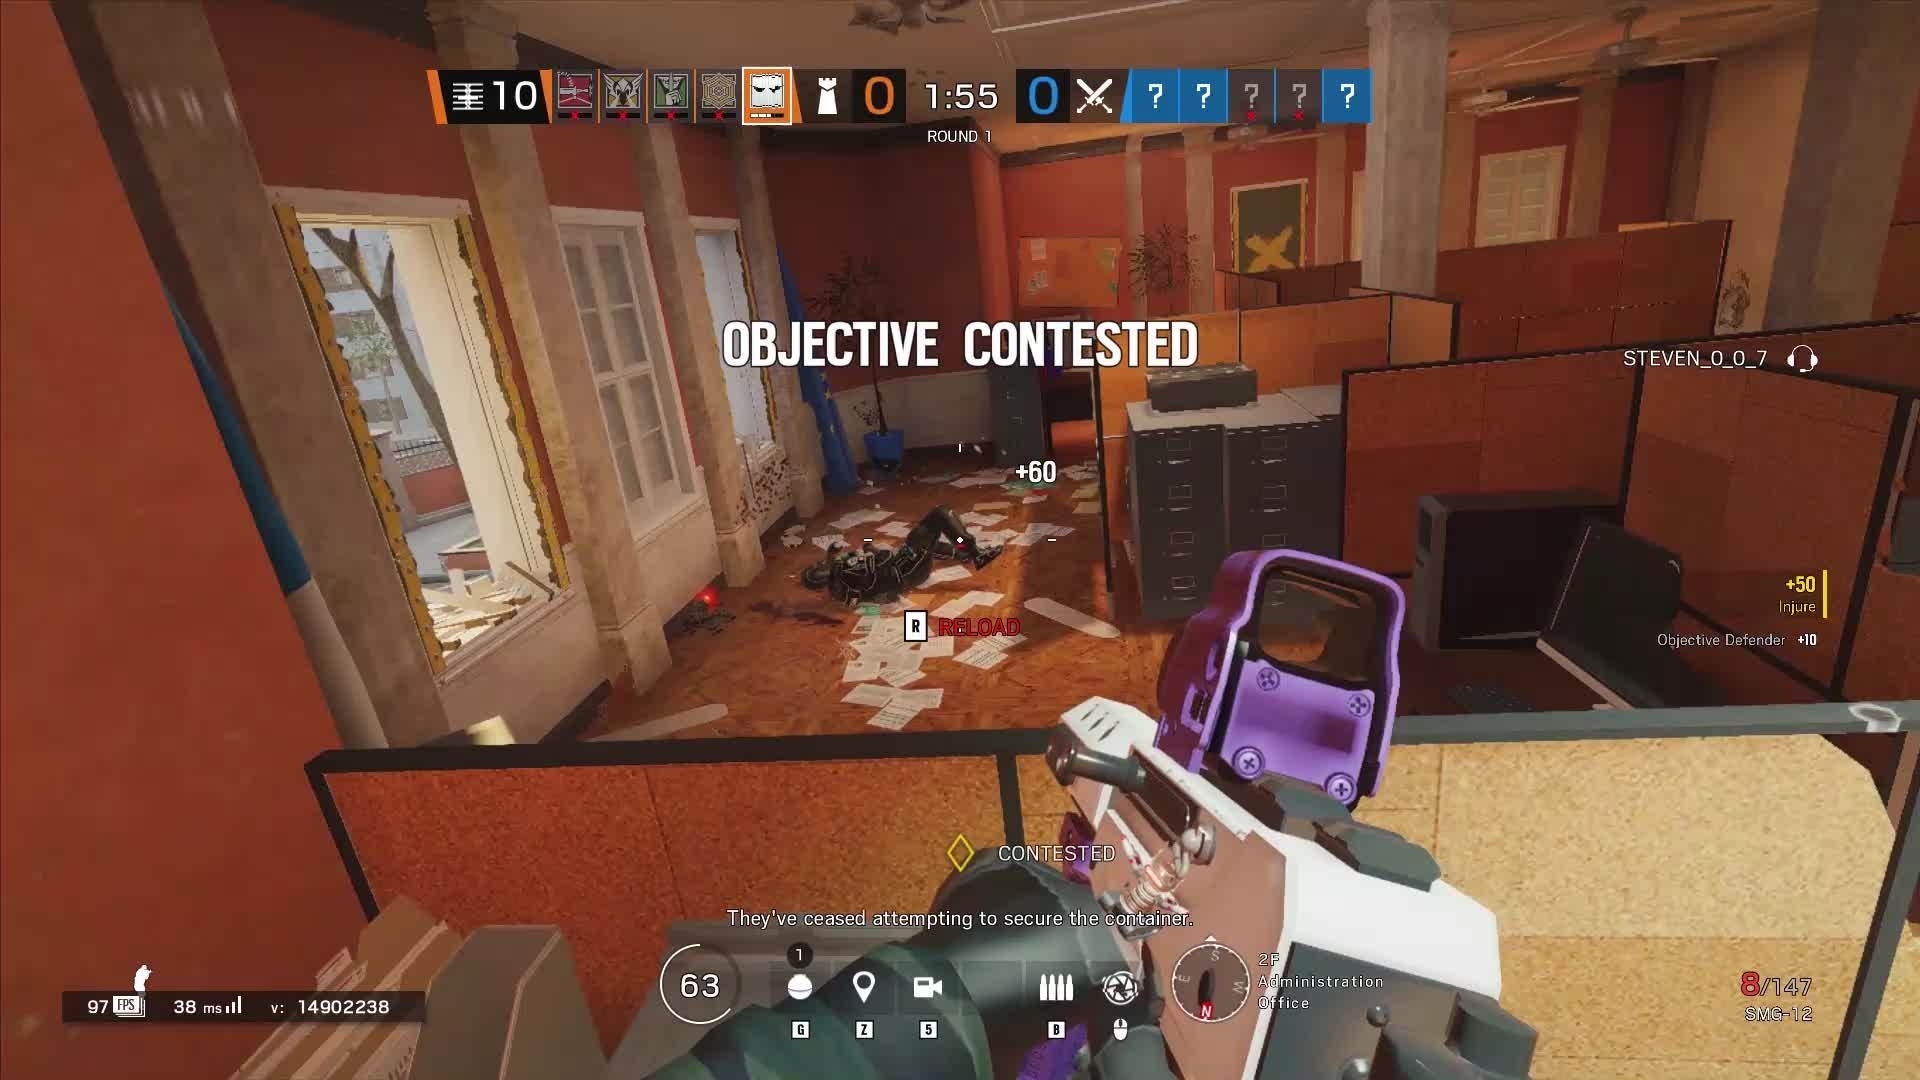 Rainbow Six: General - SMG12 play... you may love to see it #followformore❤ video cover image 1